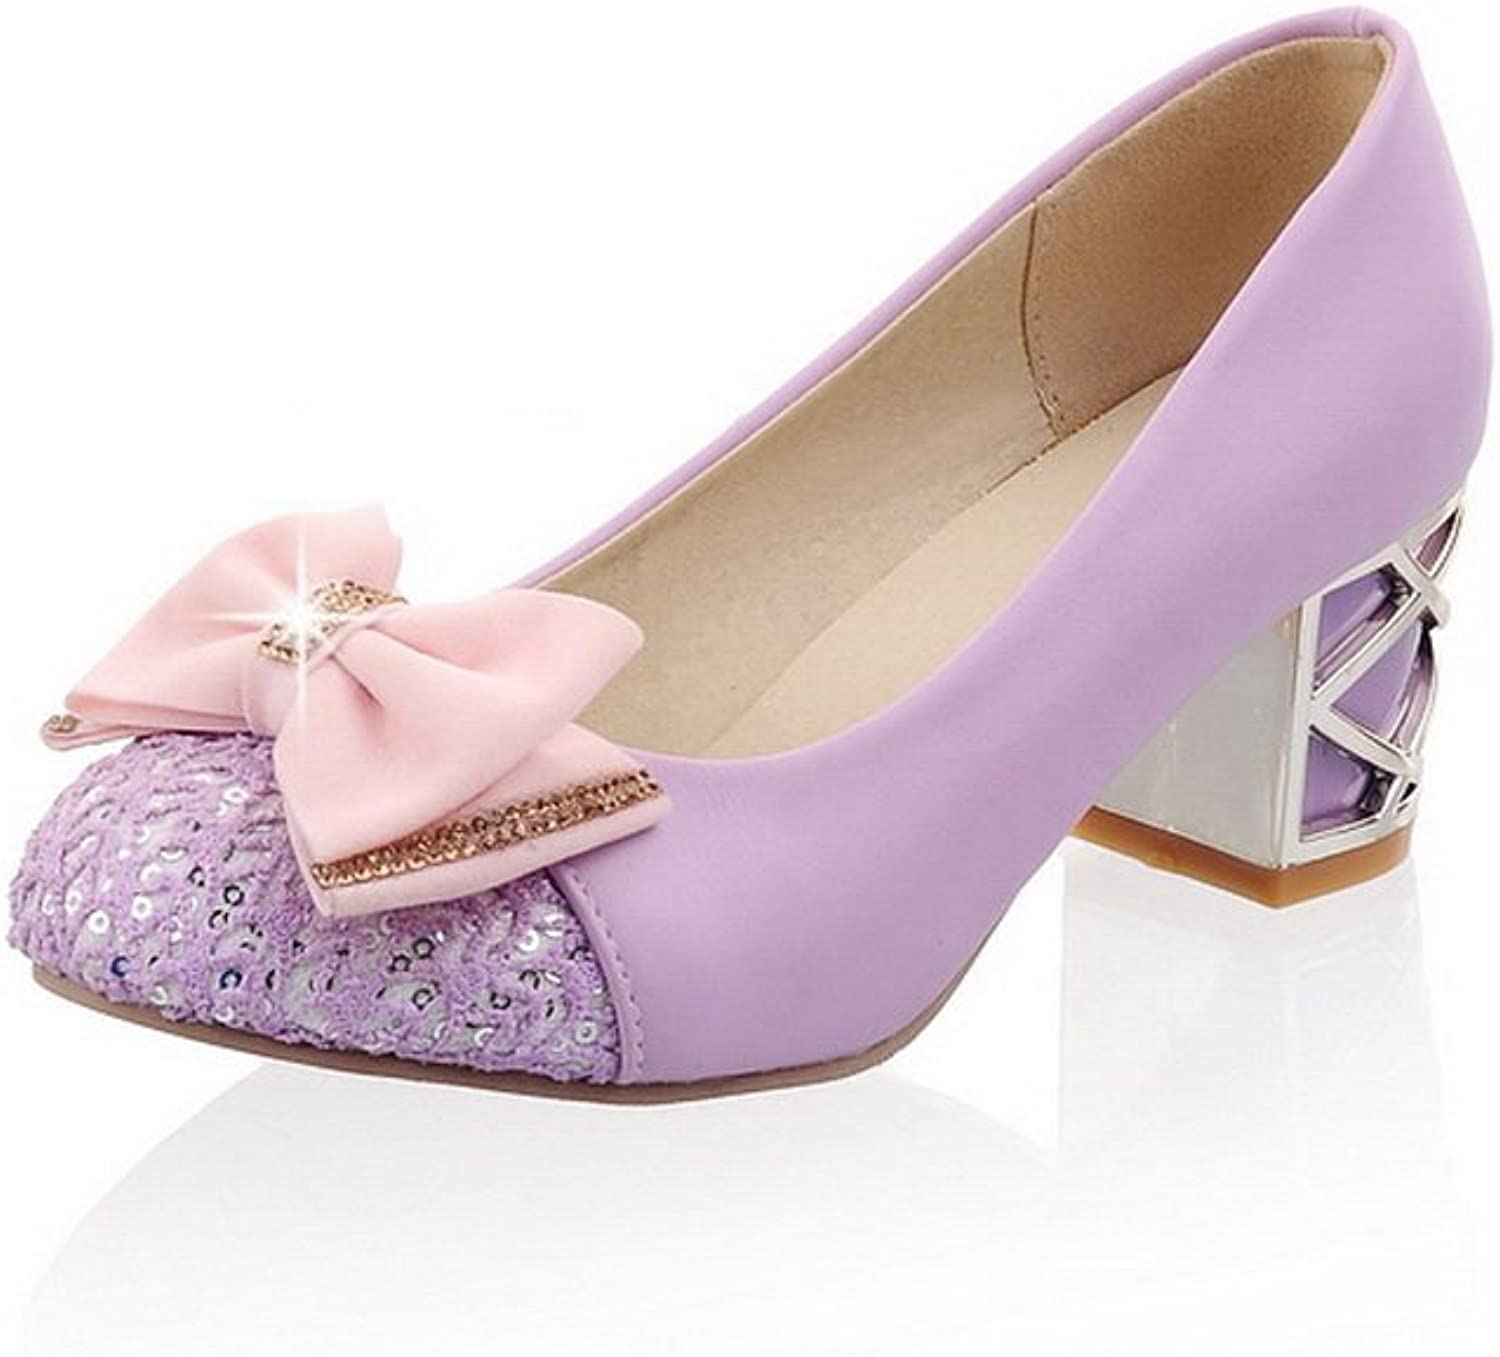 BalaMasa Ladies Bows Chunky Heels Low-Cut Uppers Urethane Pumps shoes